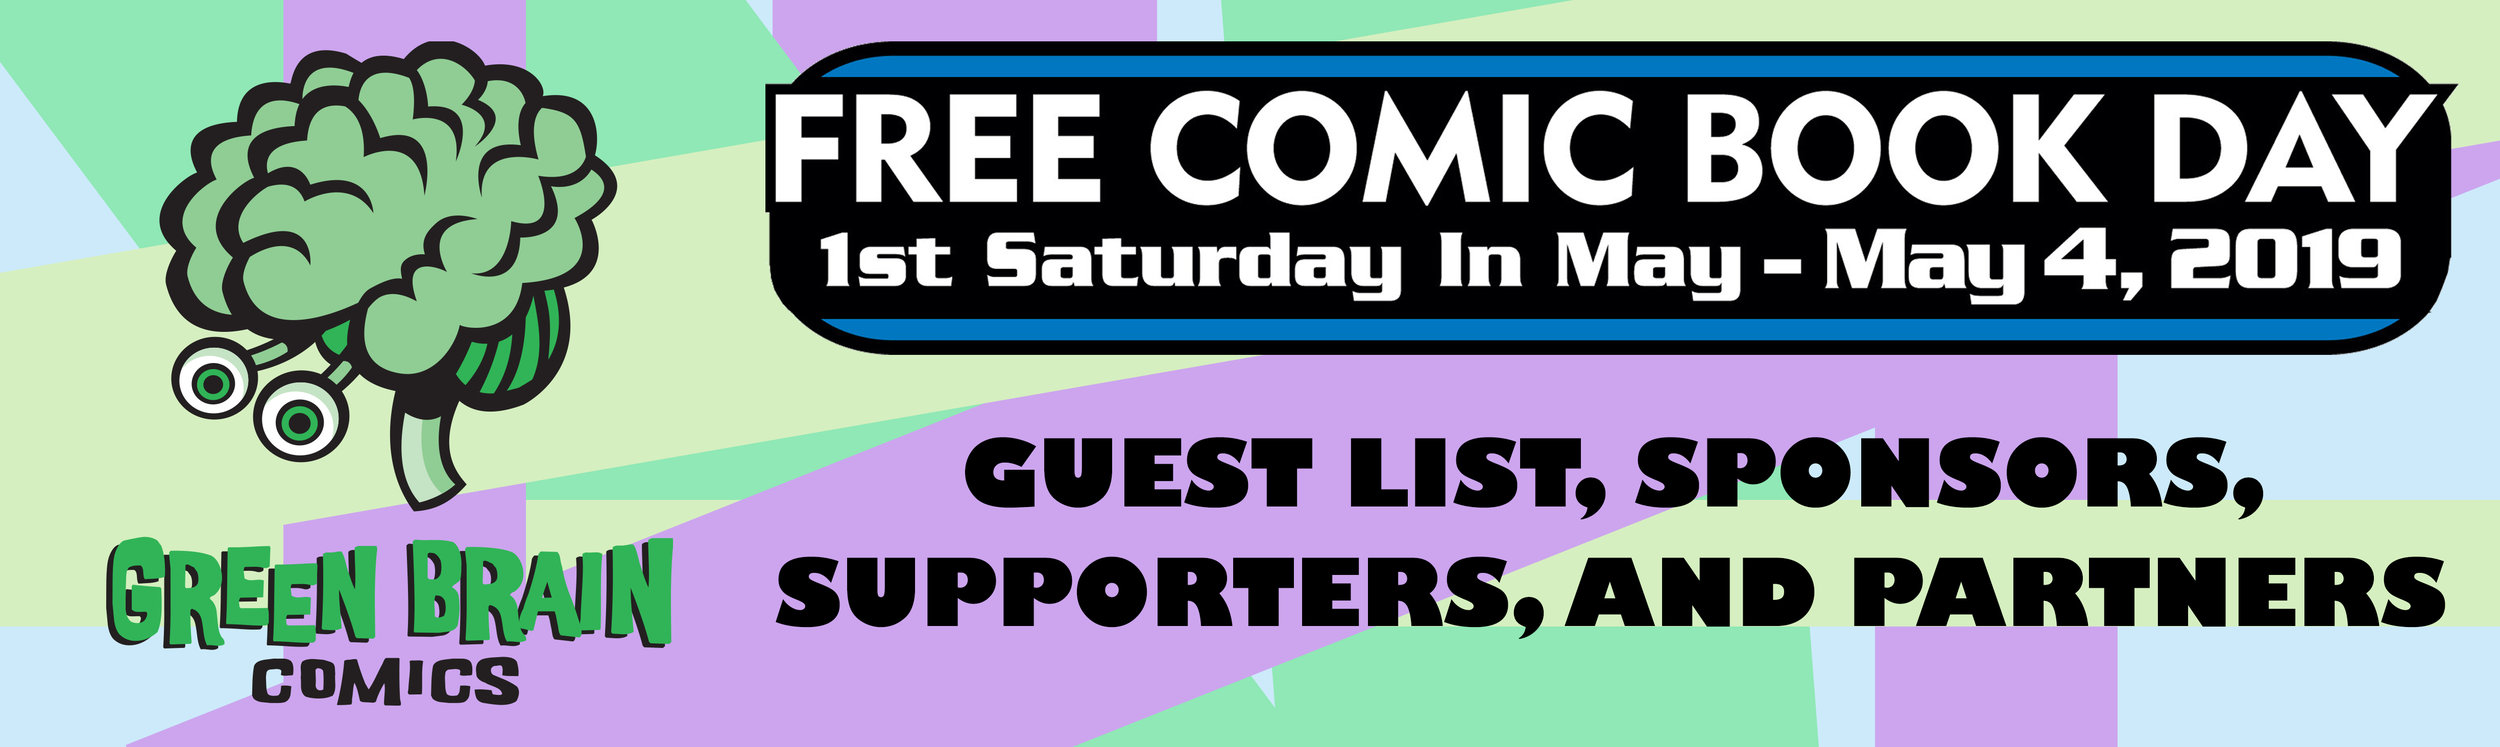 FCBD Page Banner GUEST LIST, SPONSORS, SUPPORTERS, AND PARTNERS.jpg